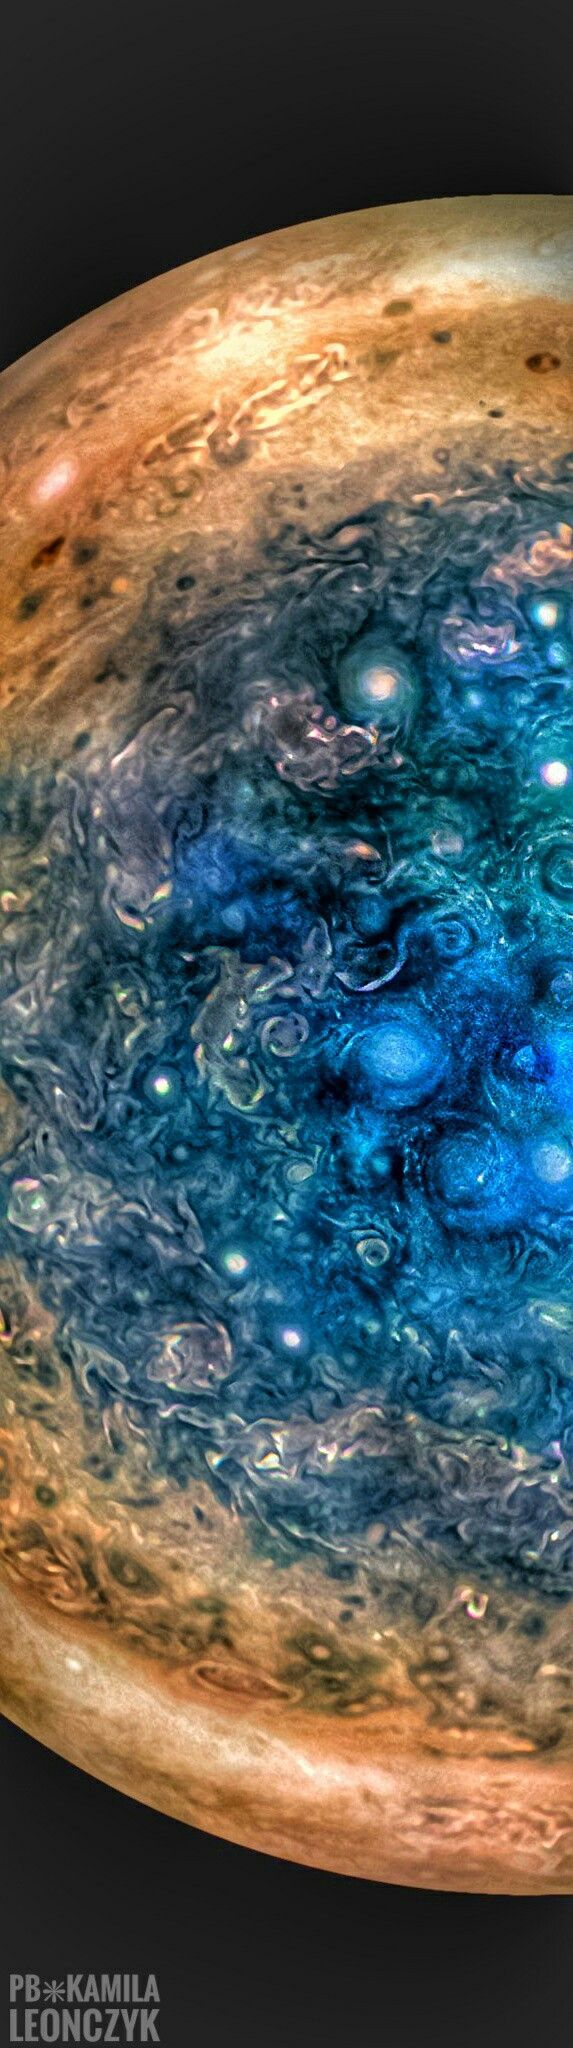 Jupiter's mysteries: First results from NASA's Juno mission - Jupiter was most likely the first planet to form in the solar system and contains some of the same ingredients of the collapsing nebula that formed the system. Knowing more about Jupiter can provide greater insight about its beginnings